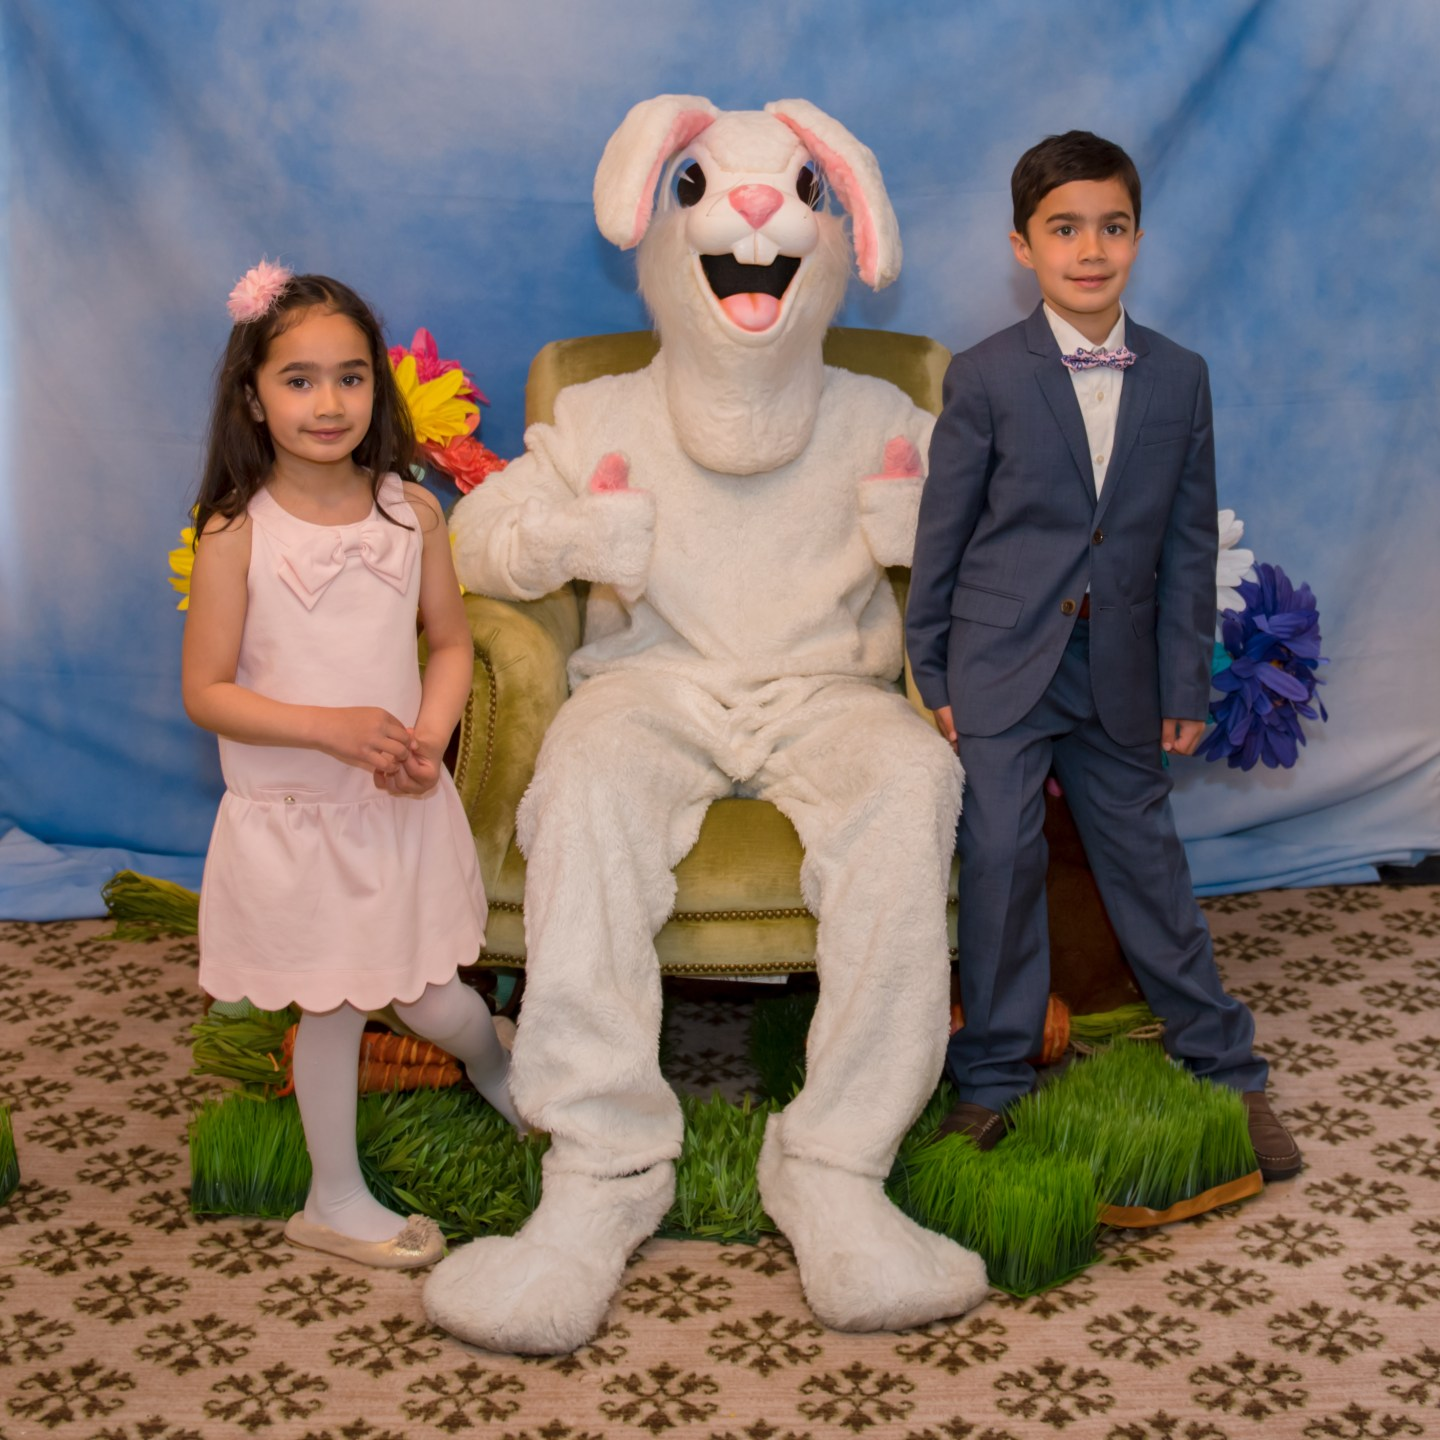 Celebrate Easter with kids